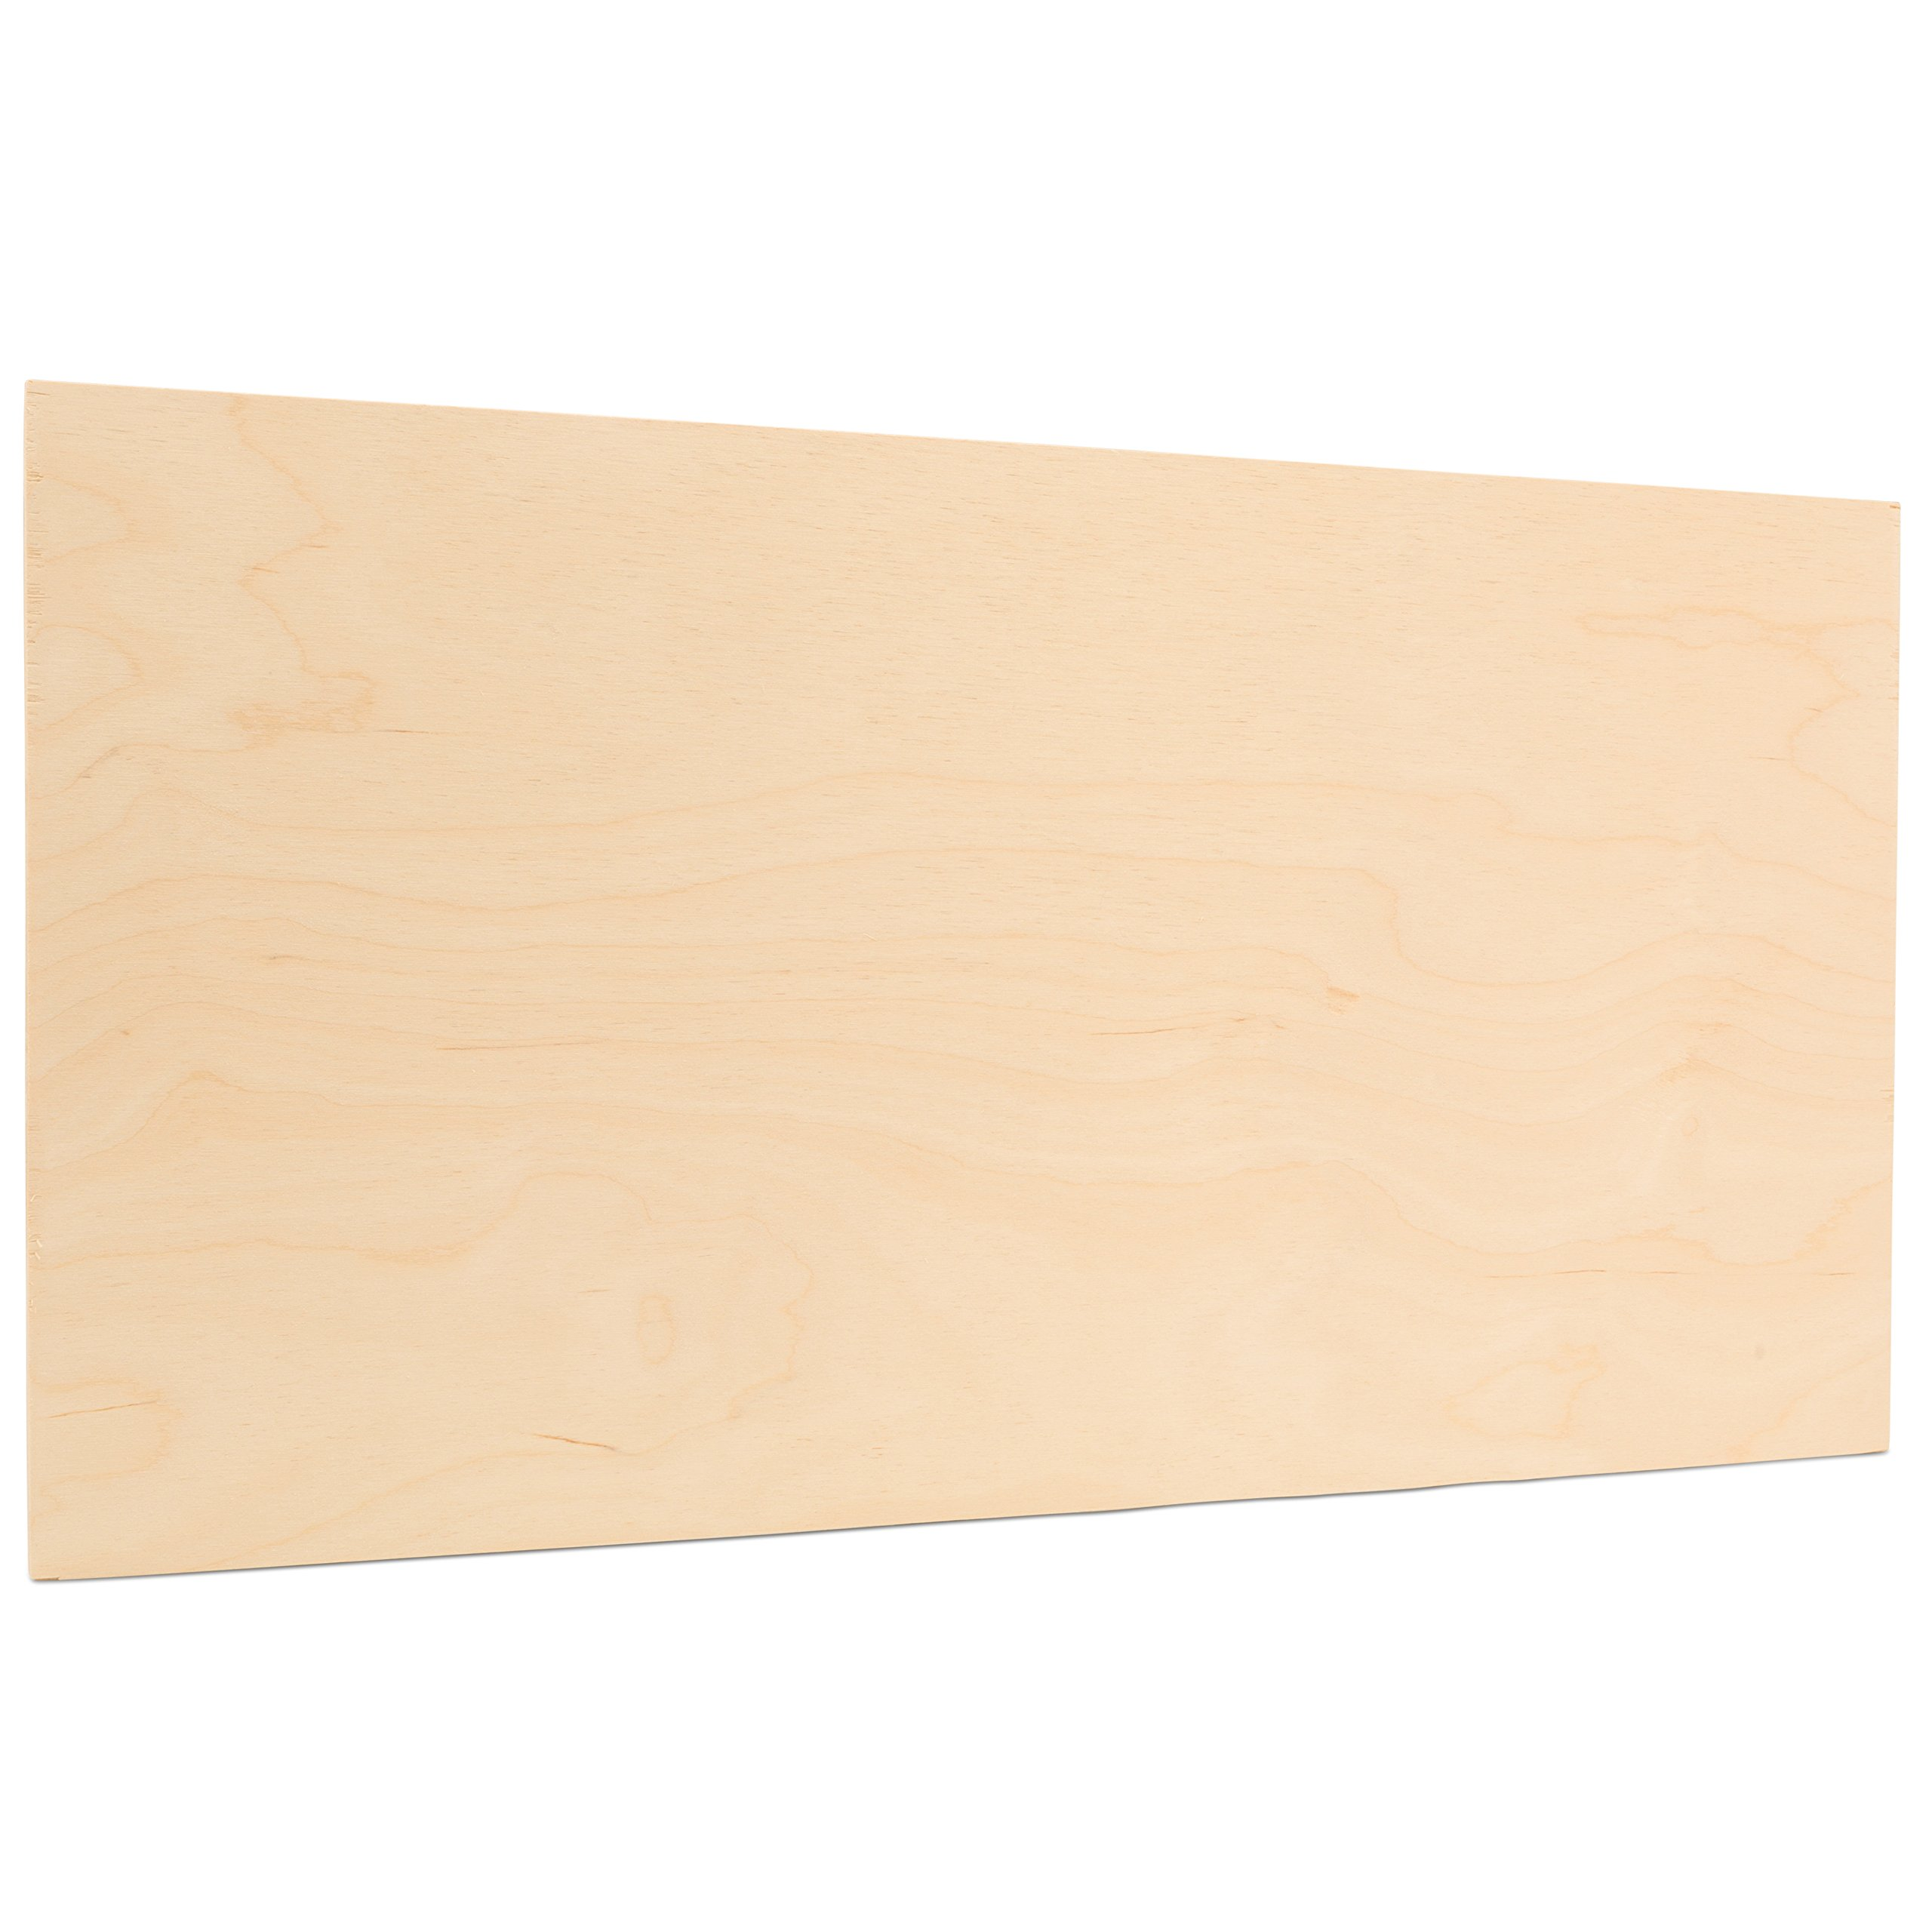 "3 Mm 1/8"" X 12"" X 24"" Premium Baltic Birch Plywood"